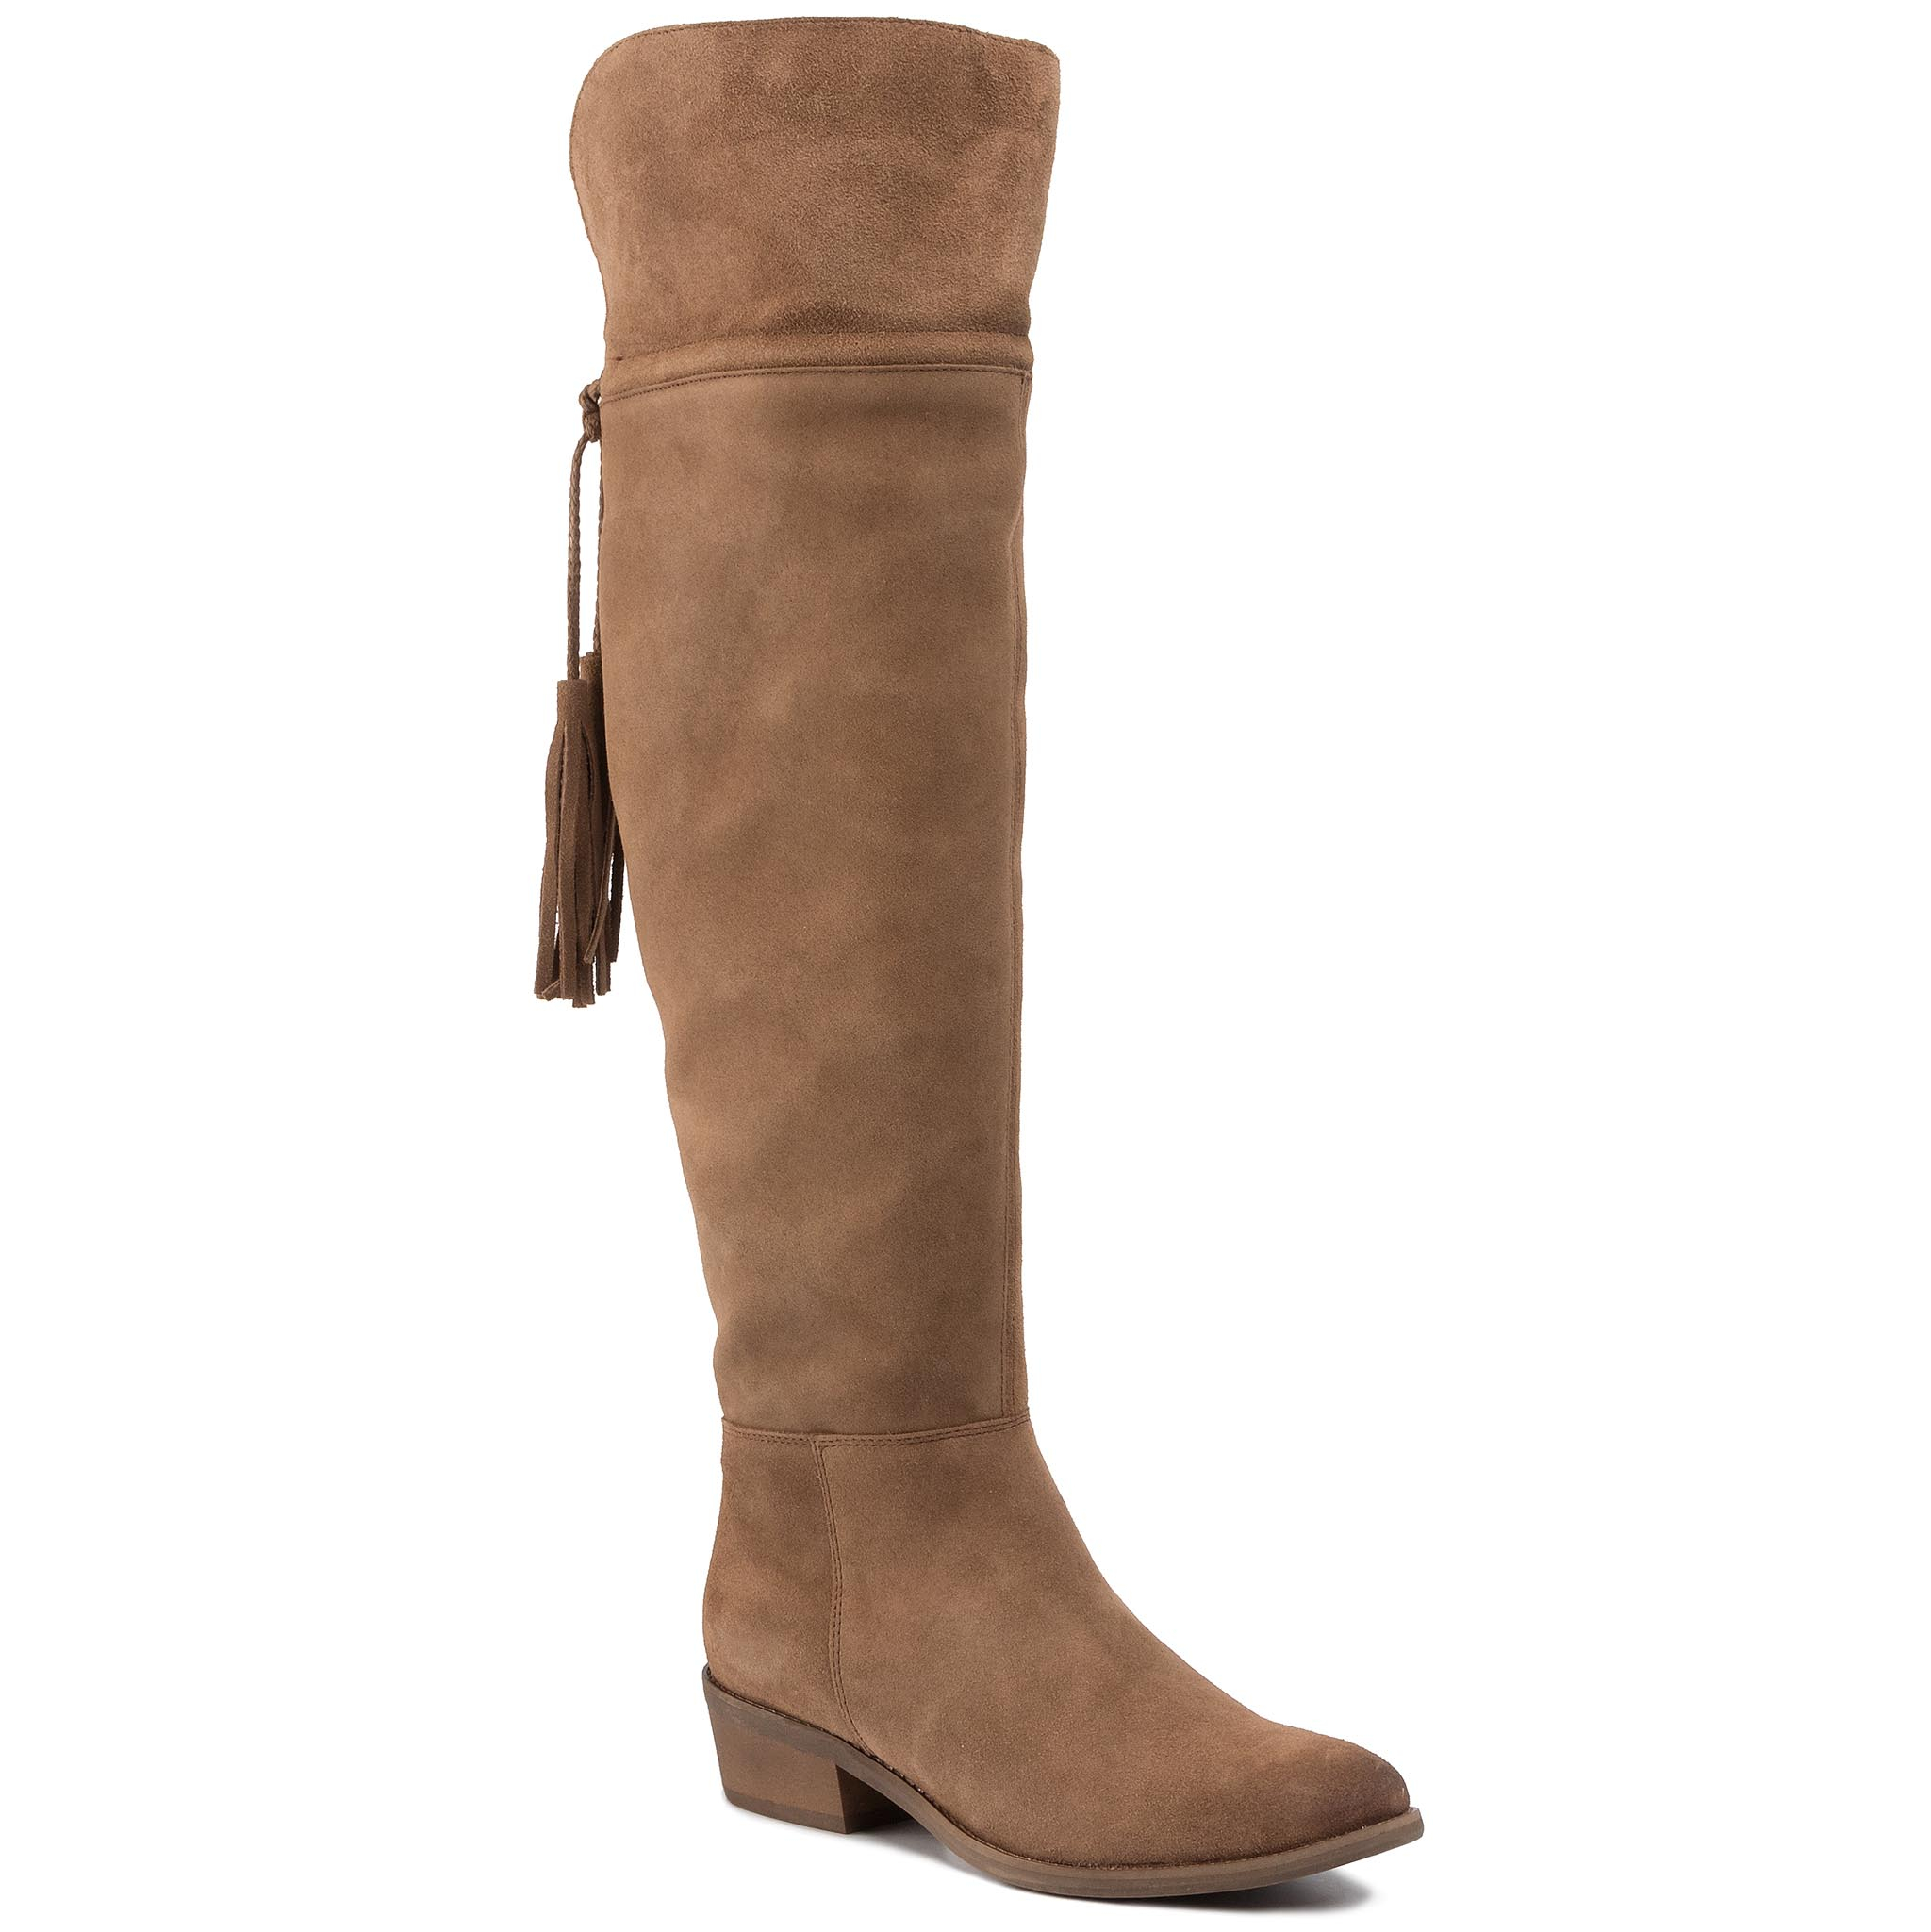 Cuissardes GINO ROSSI - DK599N-TWO-BW00-3300 Camel